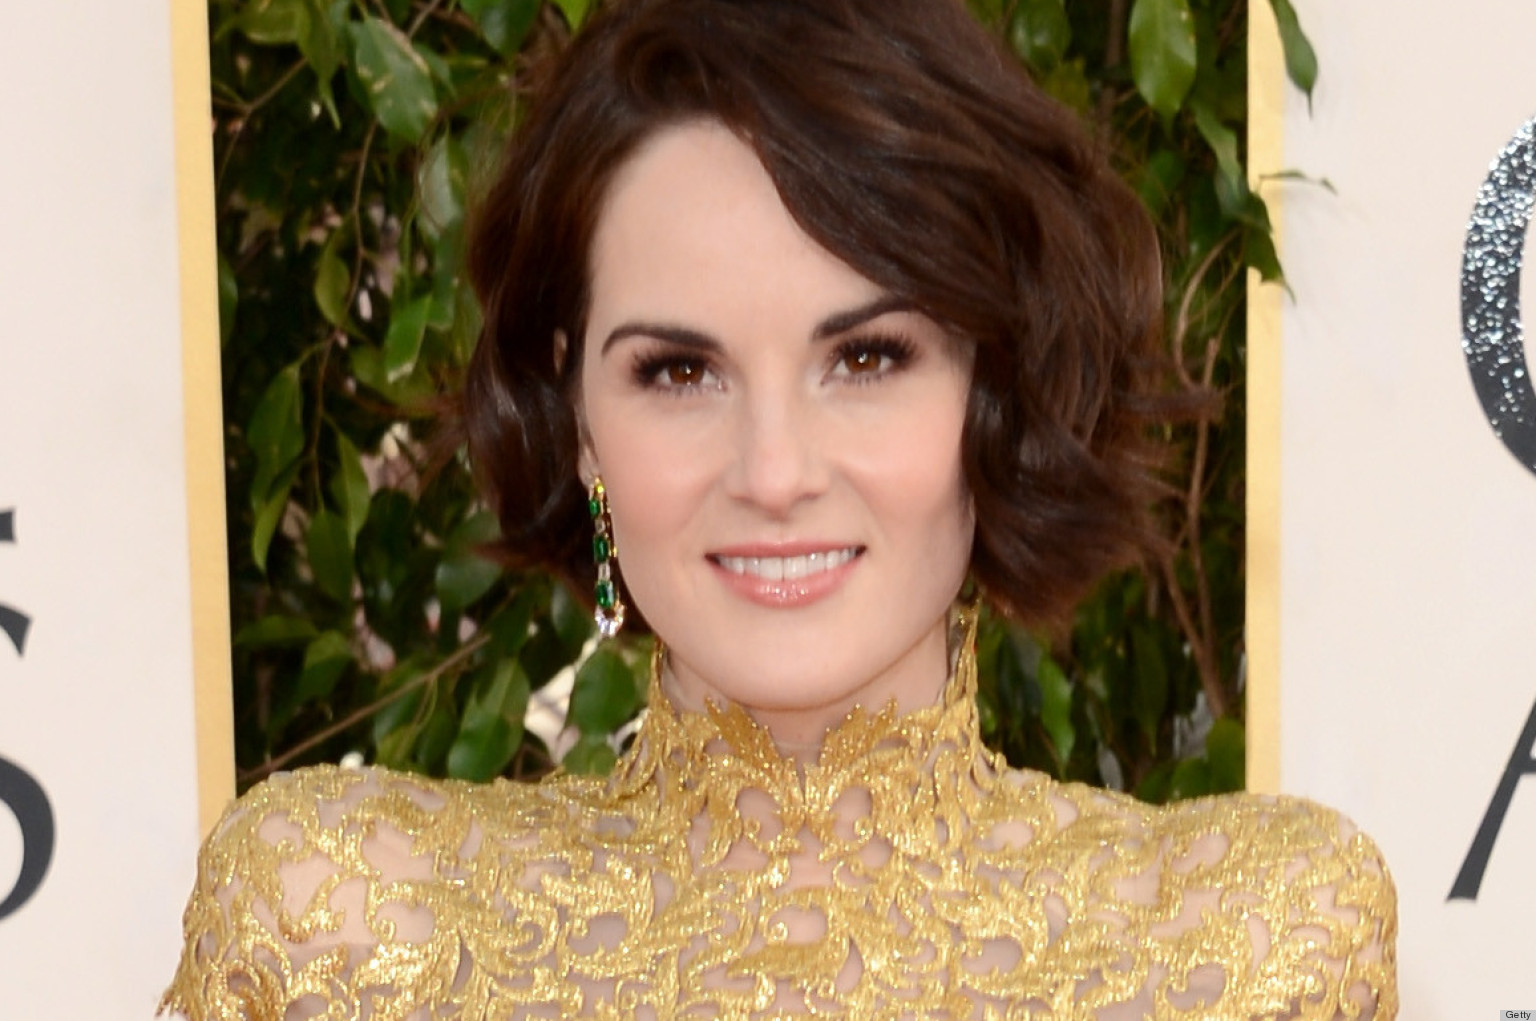 michelle dockery birth chartmichelle dockery gif, michelle dockery tumblr, michelle dockery vk, michelle dockery downton abbey, michelle dockery dan stevens, michelle dockery fansite, michelle dockery gif hunt, michelle dockery youtube, michelle dockery site, michelle dockery singer, michelle dockery interview youtube, michelle dockery instagram, michelle dockery - good behavior, michelle dockery husband, michelle dockery birth chart, michelle dockery boyfriend, michelle dockery imdb, michelle dockery walking dead, michelle dockery on jimmy fallon, michelle dockery elizabeth mcgovern singing